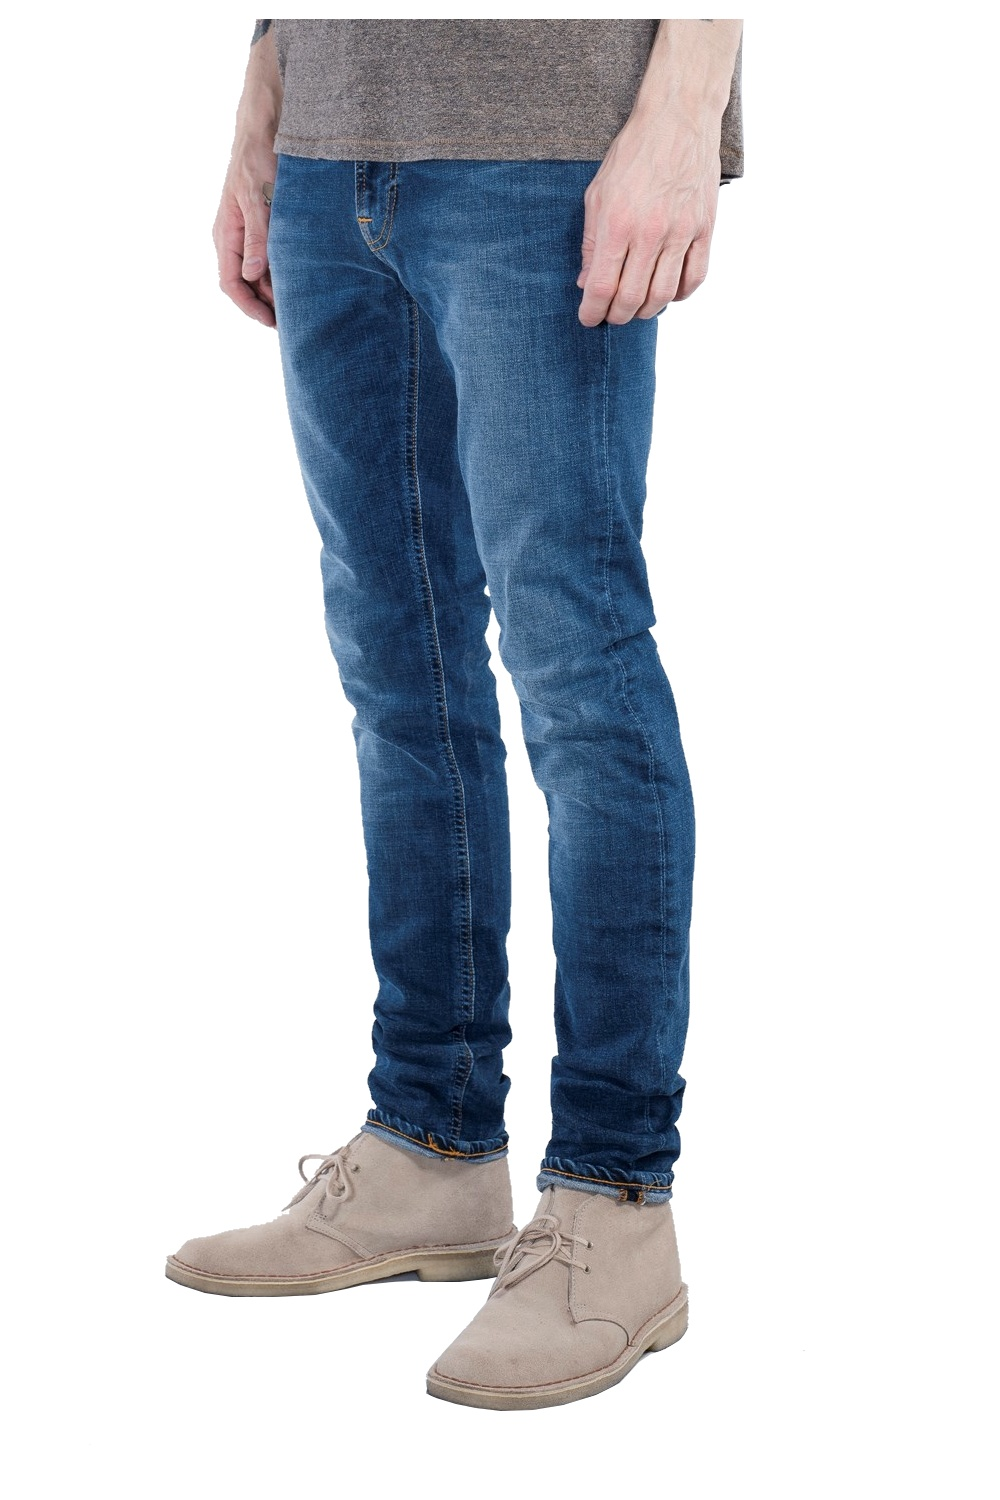 nudie jeans co lean dean straight slim fit jeans bay blue nudie jeans co from thirtysix uk. Black Bedroom Furniture Sets. Home Design Ideas